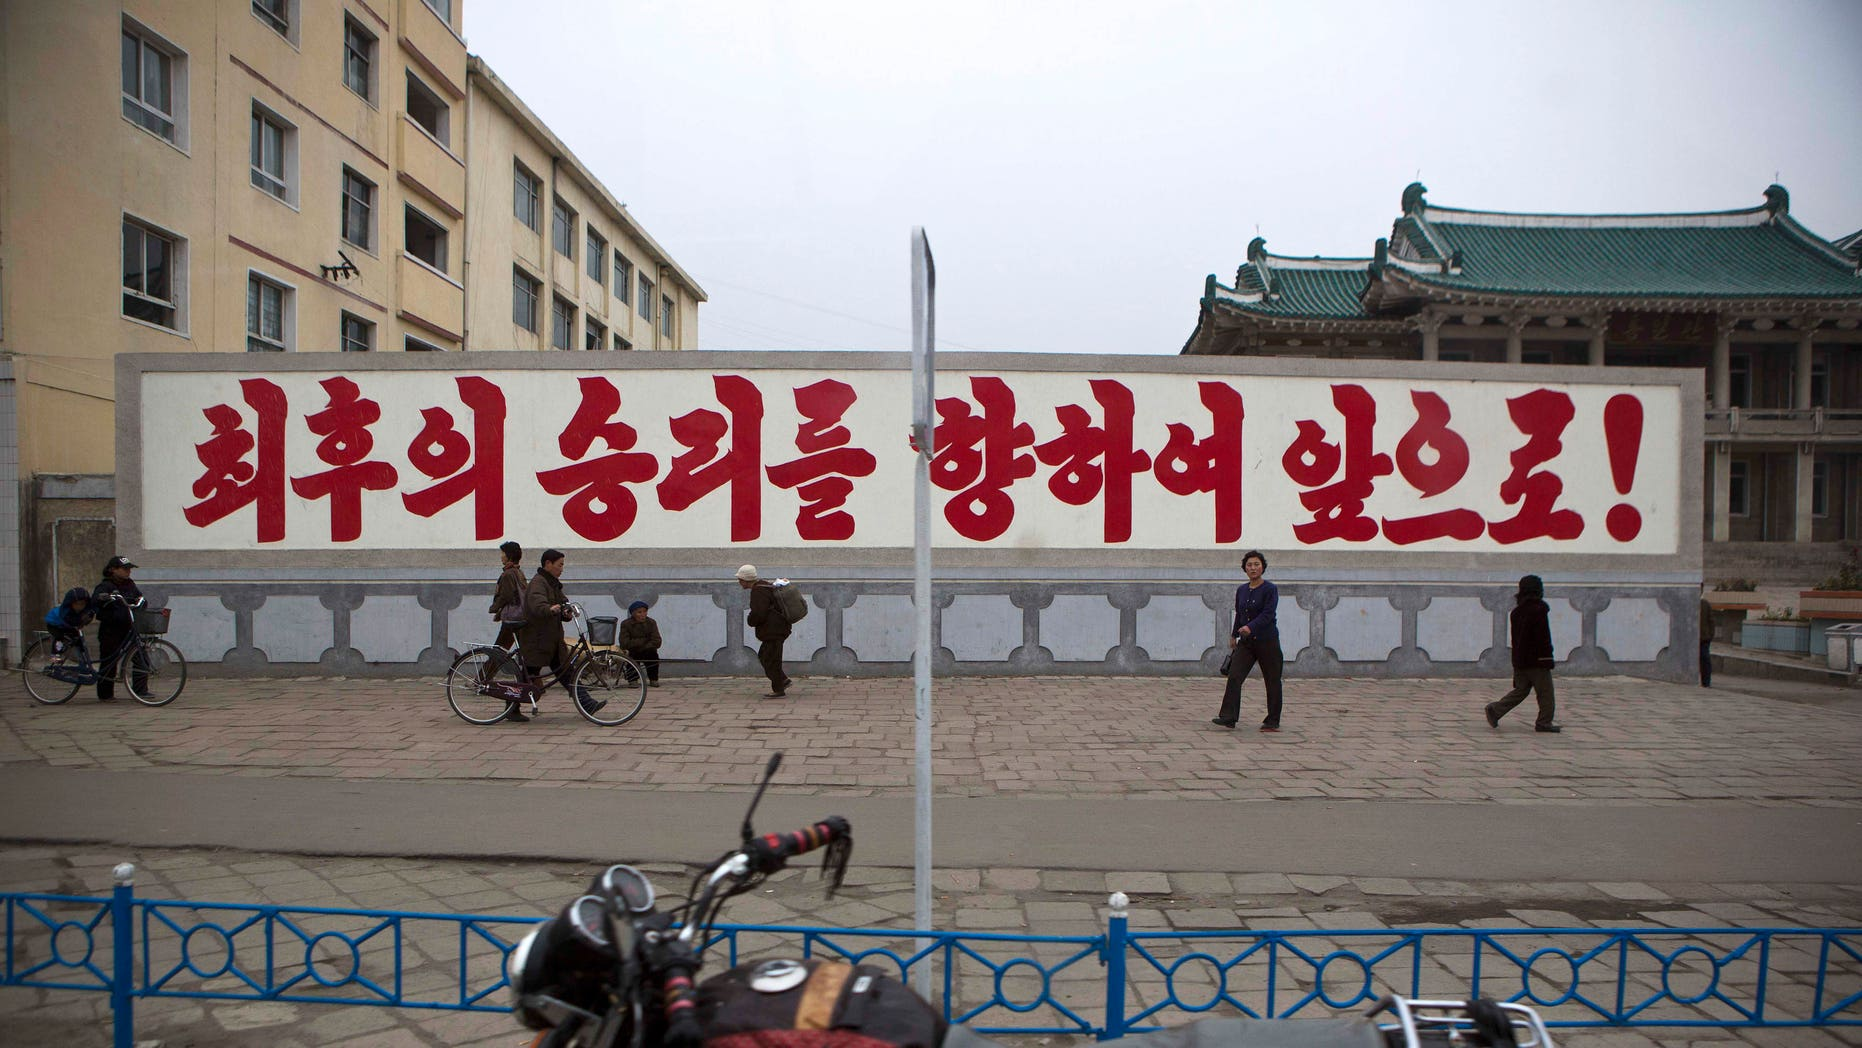 """April 23, 2013: A propaganda billboard, which reads """"Forward to the Ultimate Victory"""" in Korean stands in central Kaesong, North Korea. For weeks, North Korea has threatened to attack the U.S. and South Korea for holding joint military drills and for supporting U.N. sanctions. Washington and Seoul said they've seen no evidence that Pyongyang is actually preparing for a major conflict, though South Korean defense officials said the North appears prepared to test-fire a medium-range missile."""